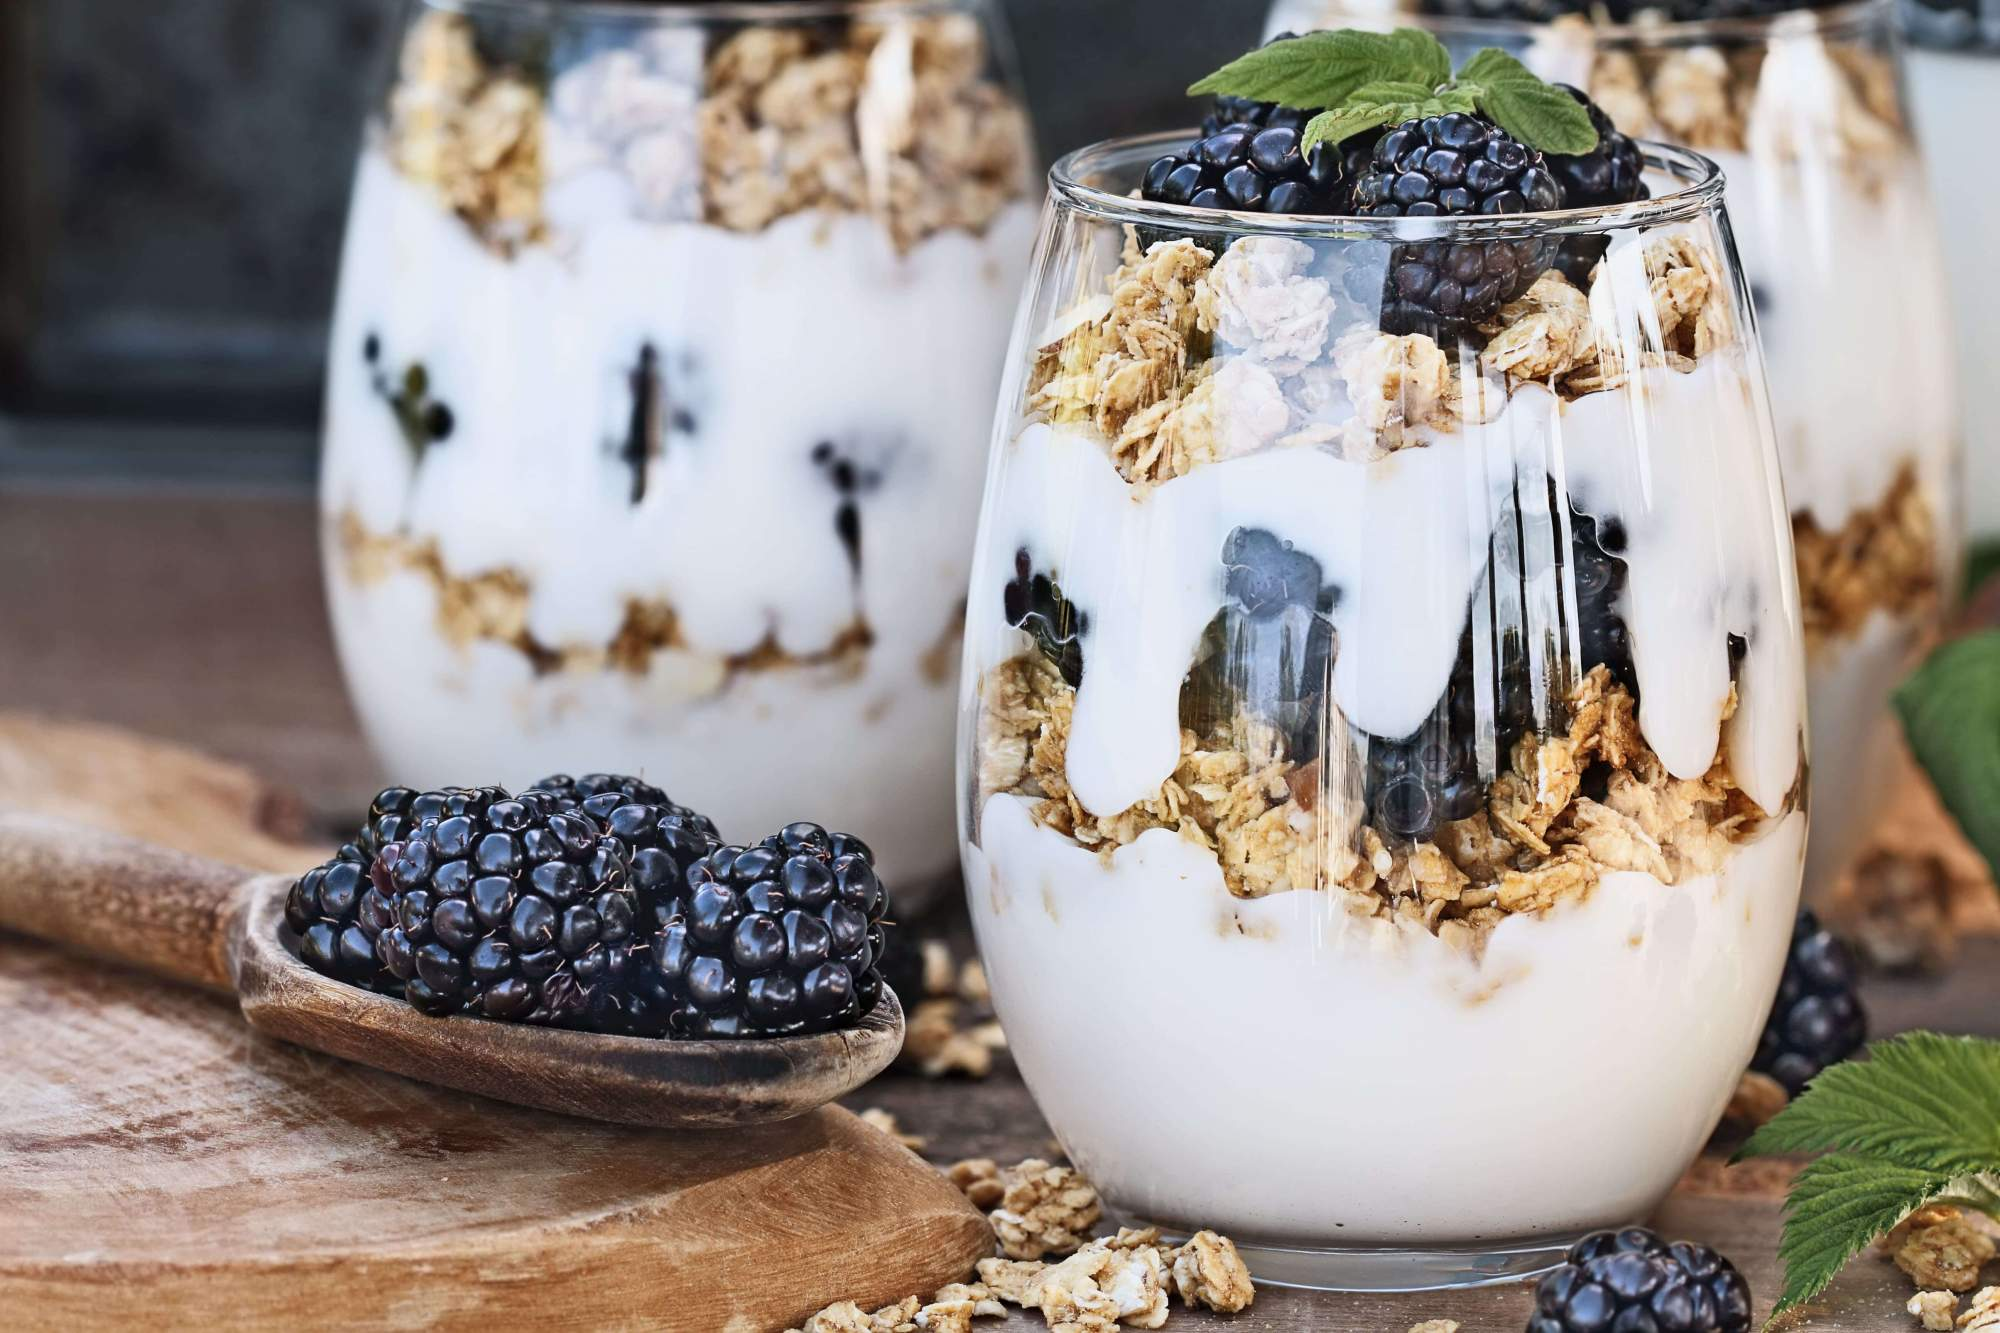 Blackberry granola yogurt for breakfast in this week's meal plan.